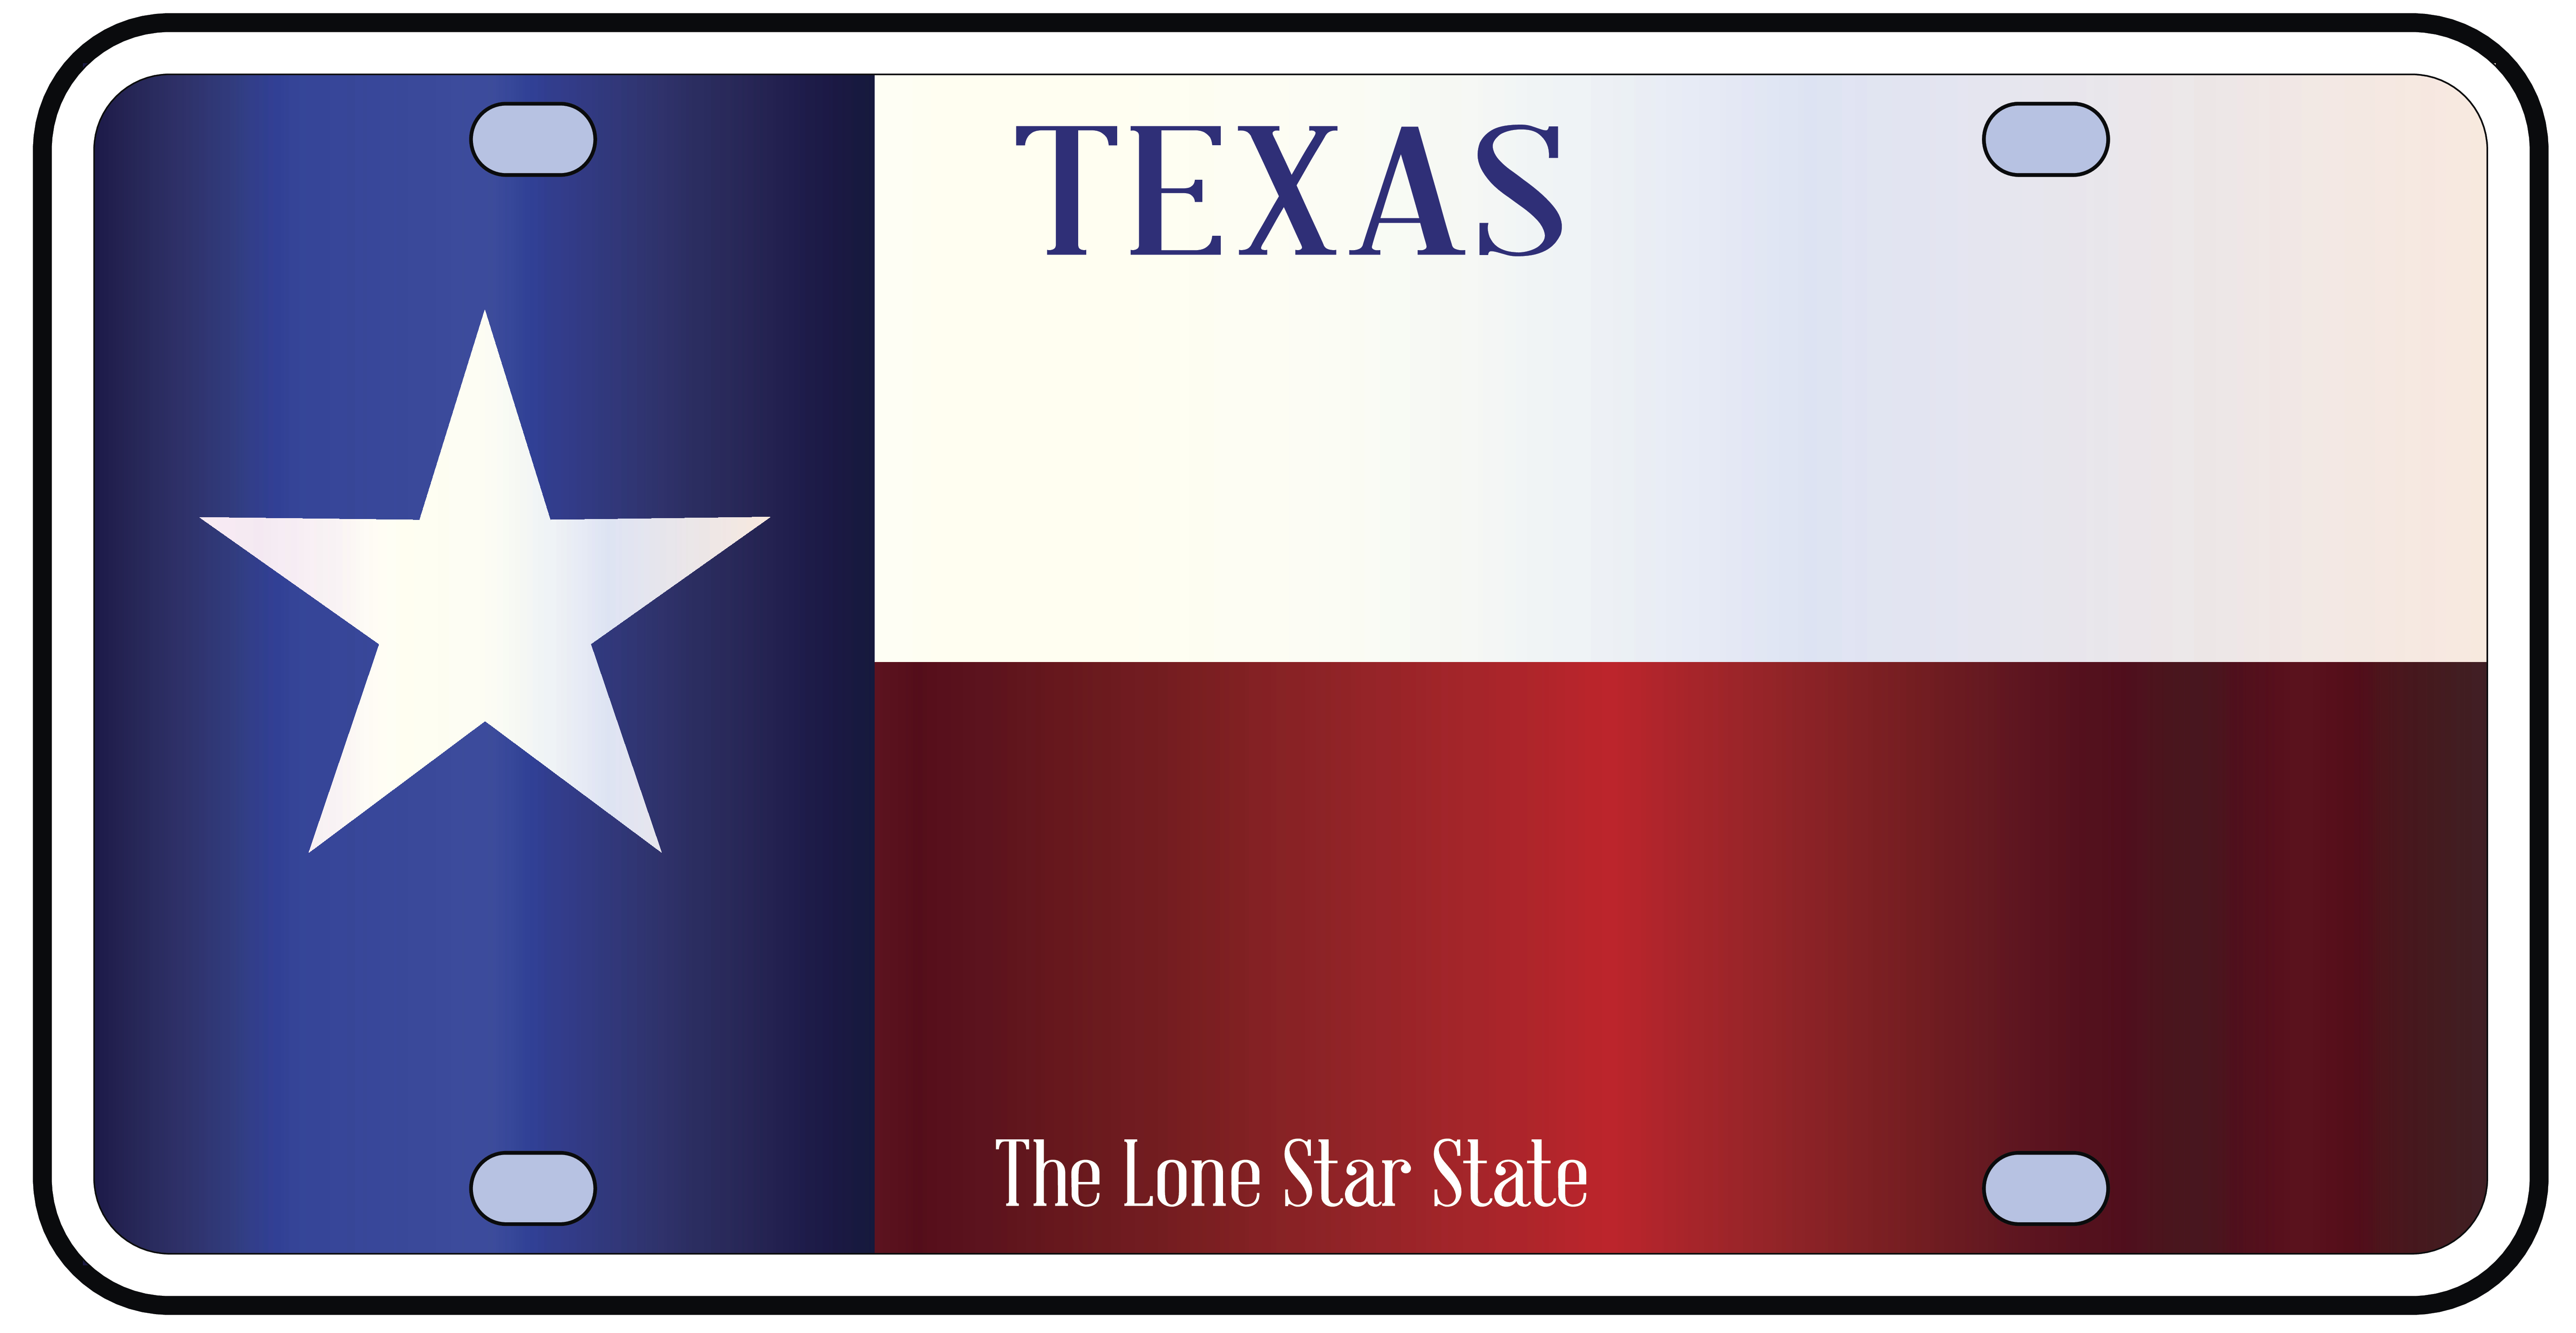 How Do I Renew an Expired Vehicle Registration in Texas?